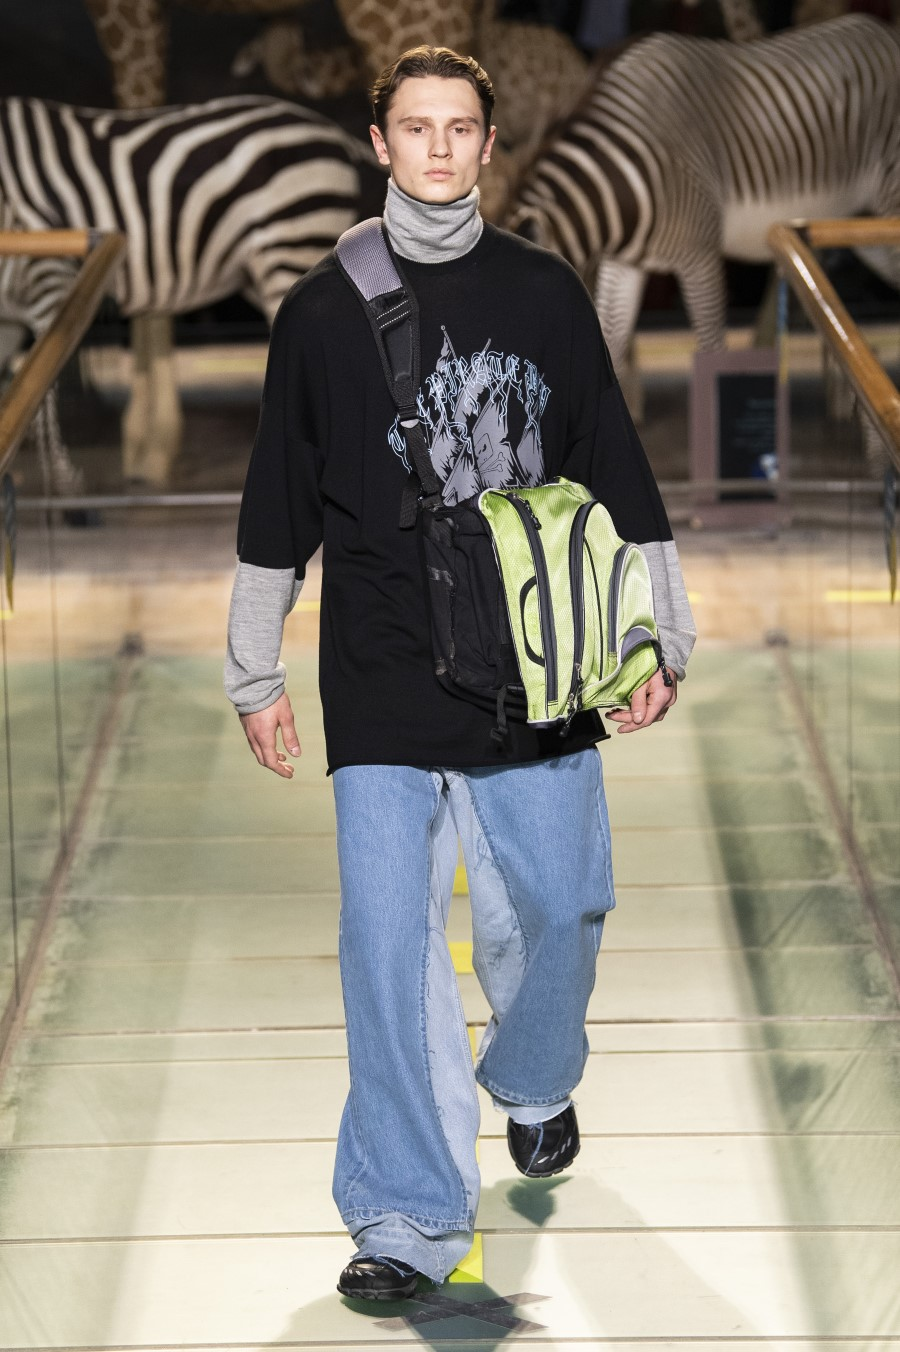 Vetements Fall Winter 2019 - Paris Fashion Week